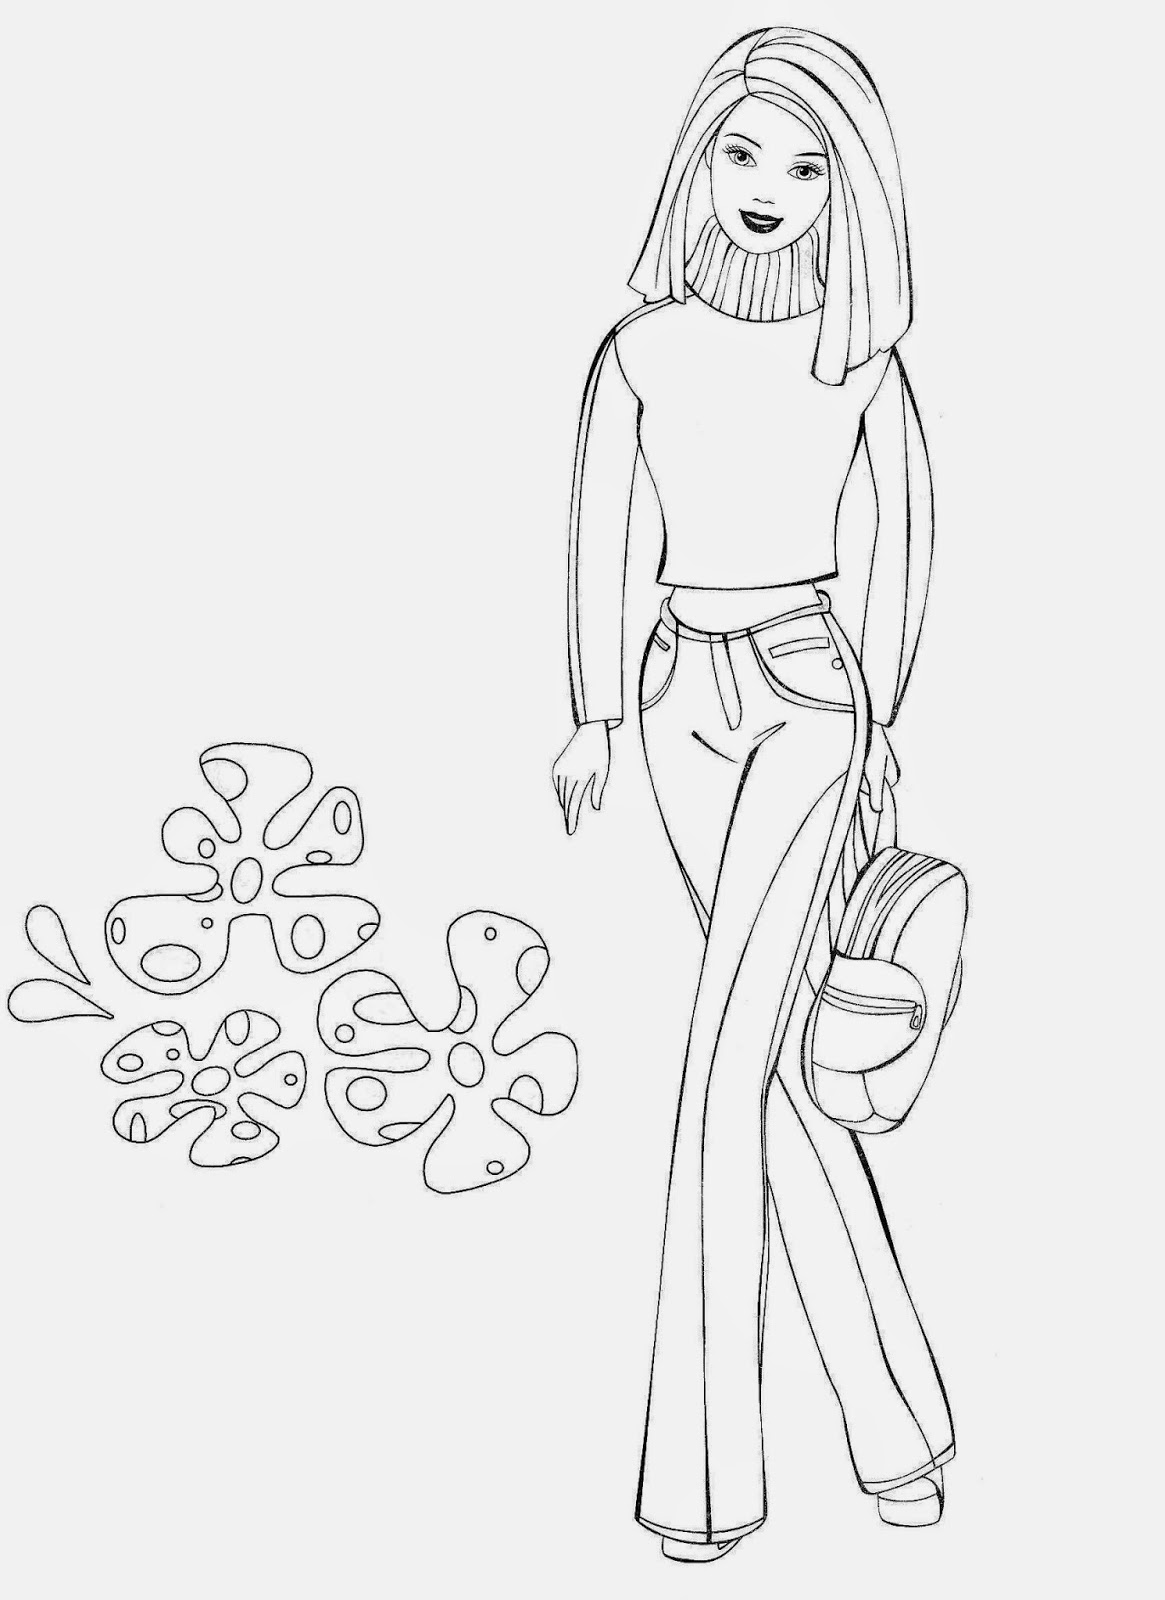 barbie color sheets barbie face coloring pages at getdrawings free download color sheets barbie